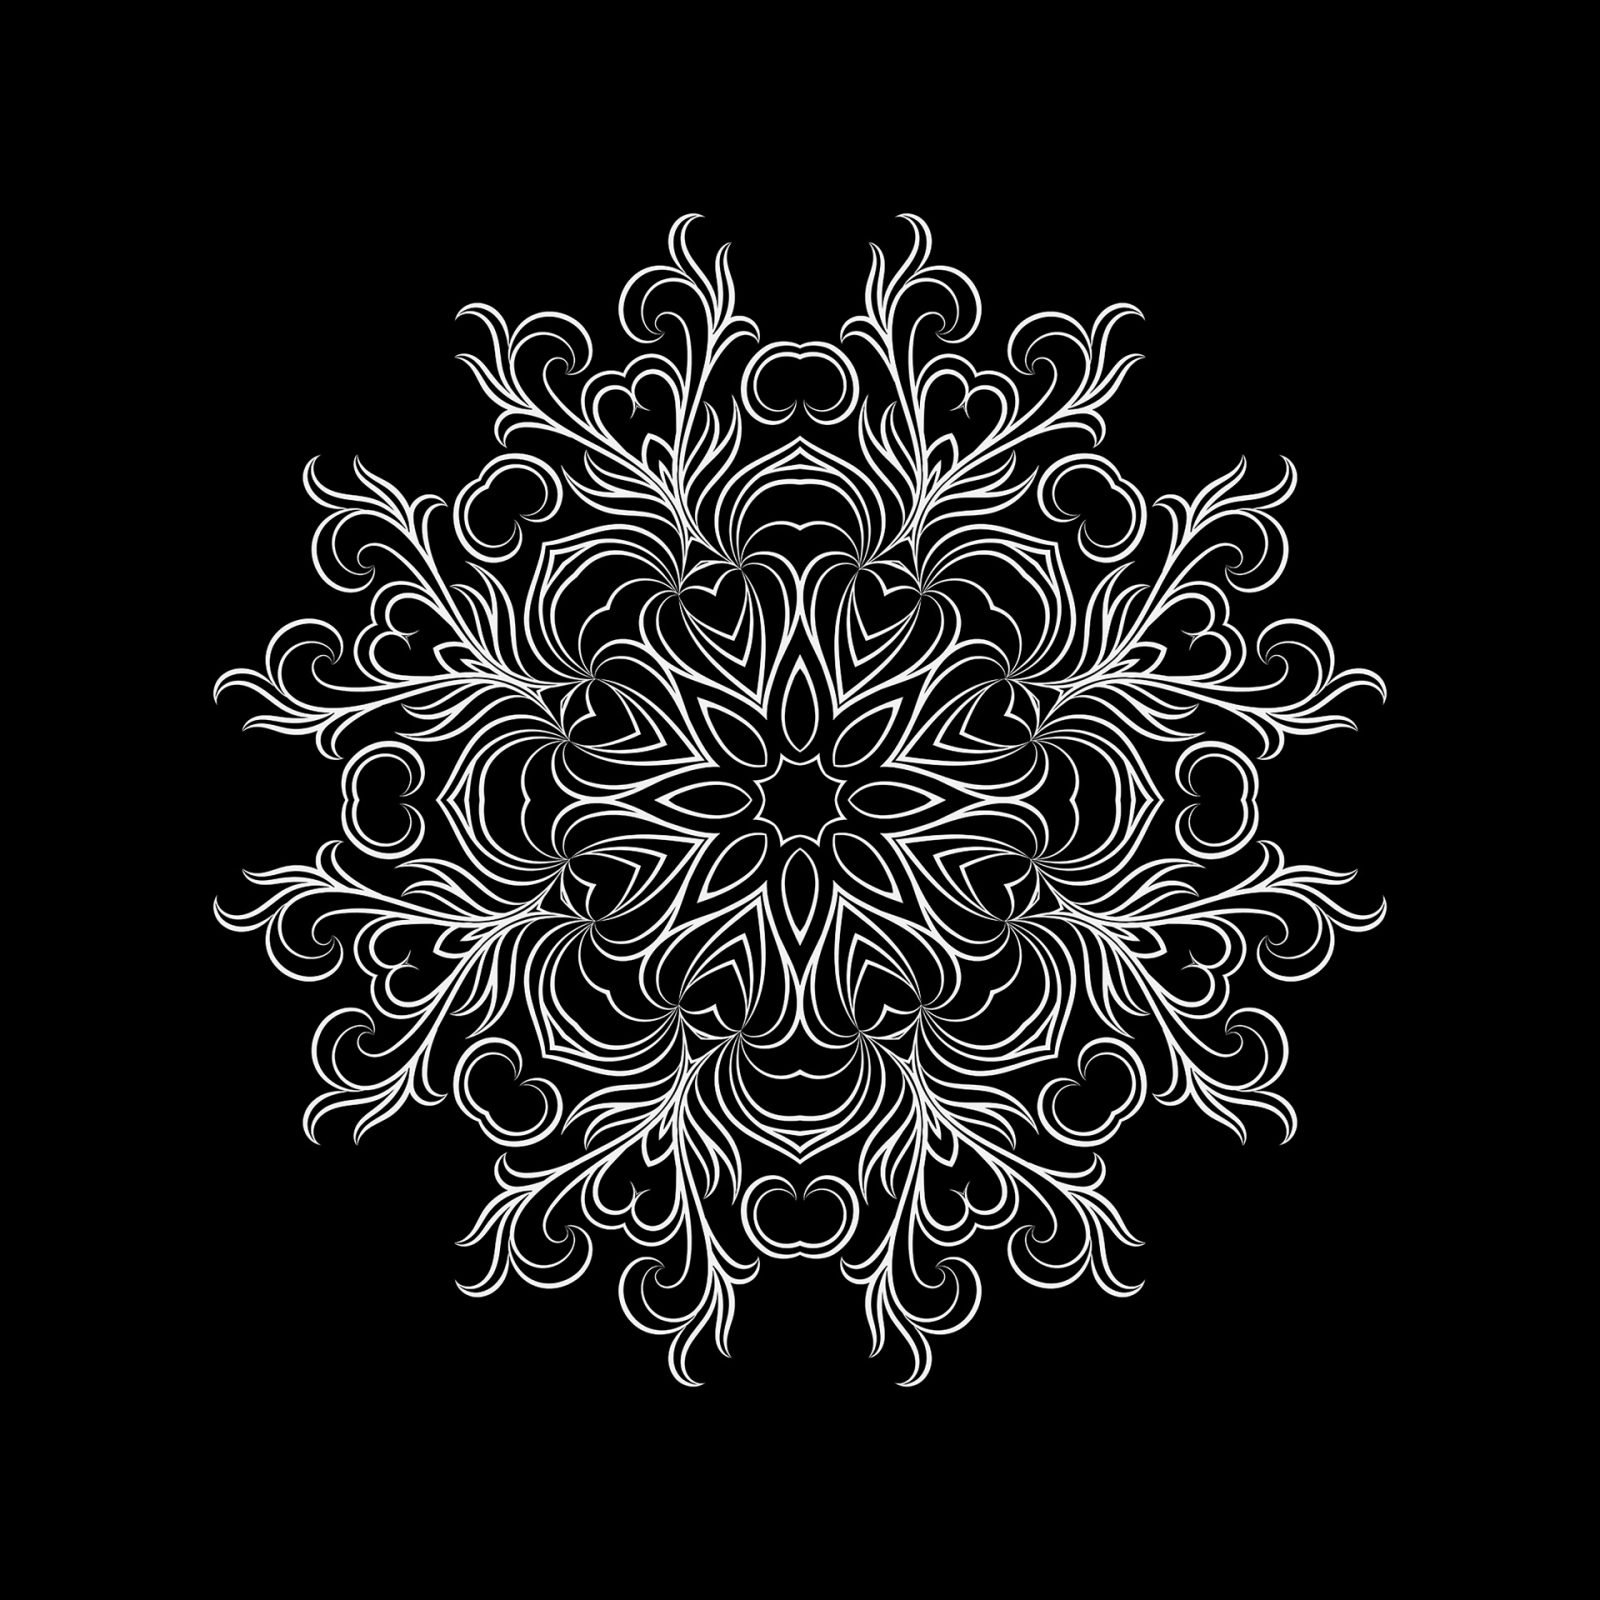 Mandala 2- Artwork by Henry Egloff